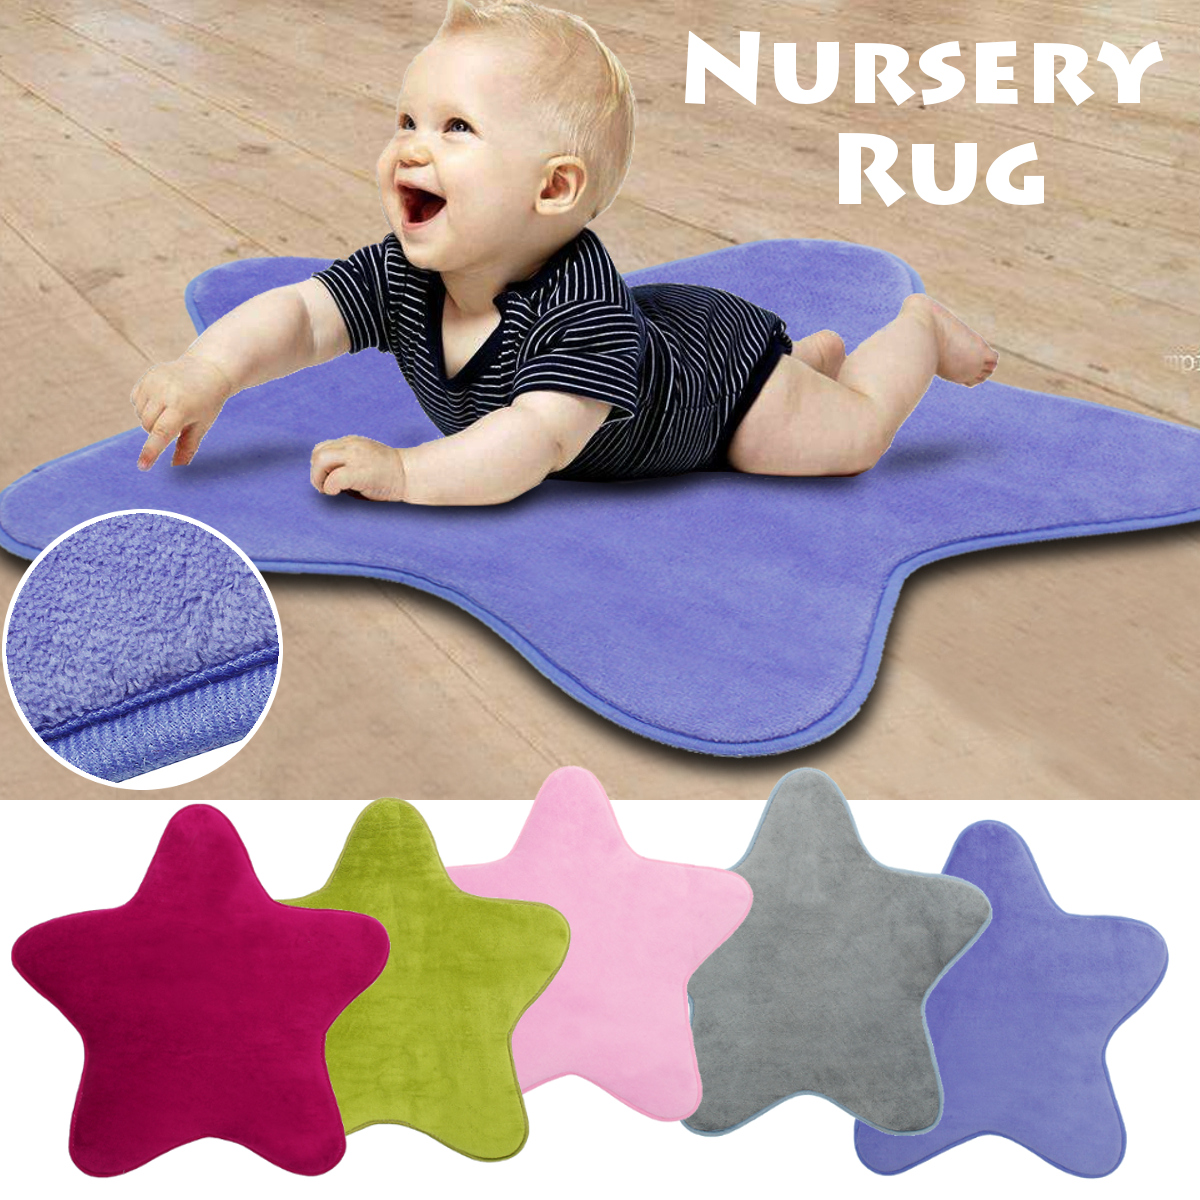 HomeTextile Star Kids Play Mat Baby Rug Anti Slip Comfortable Floor Cotton Crawl Carpet Nursery Rug For Children Room Decoration